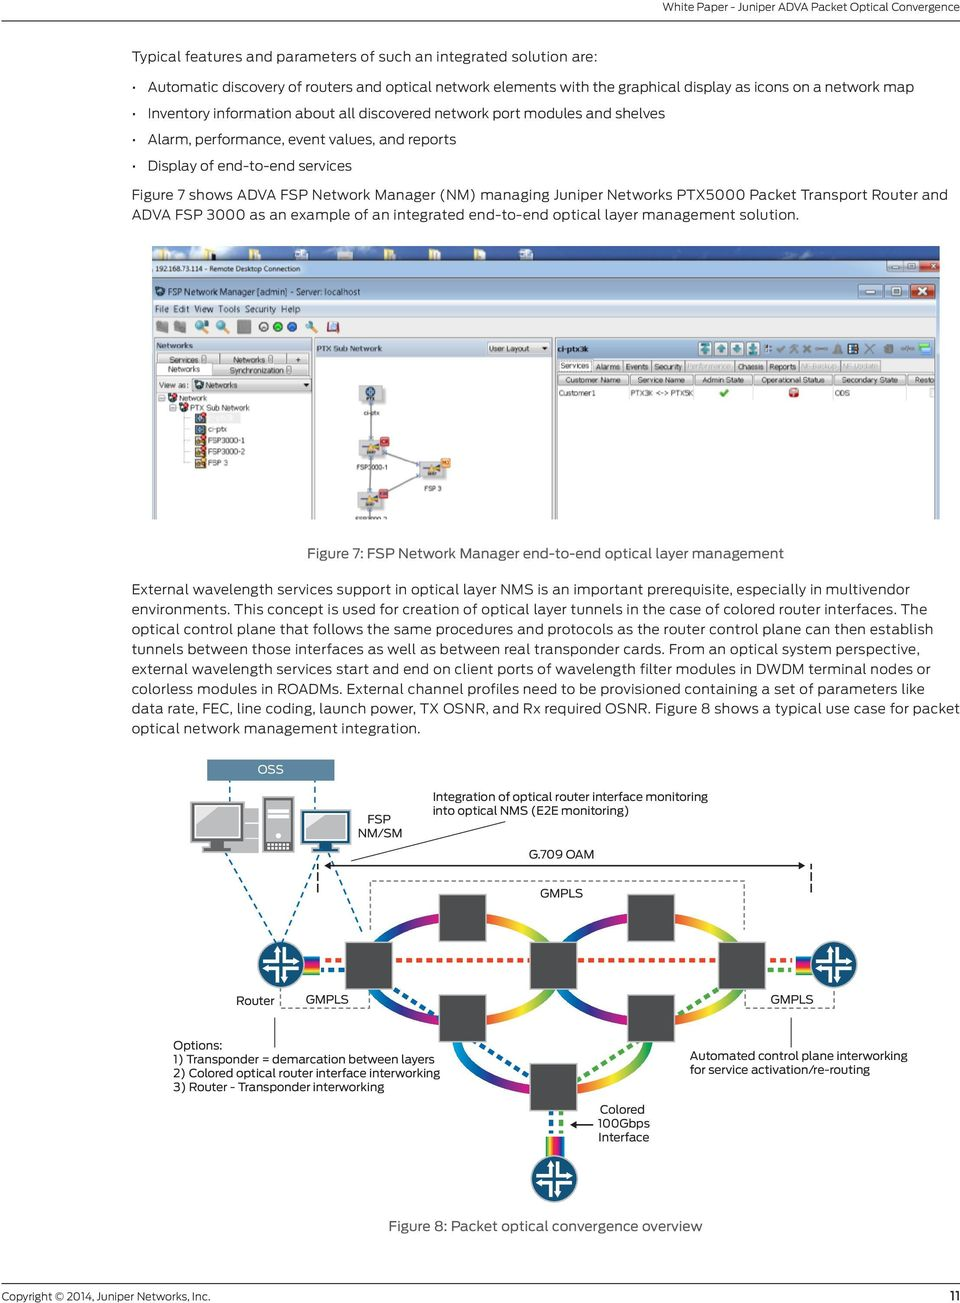 Juniper Networks PTX5000 Packet Transport Router and ADVA FSP 3000 as an example of an integrated end-to-end optical layer management solution.